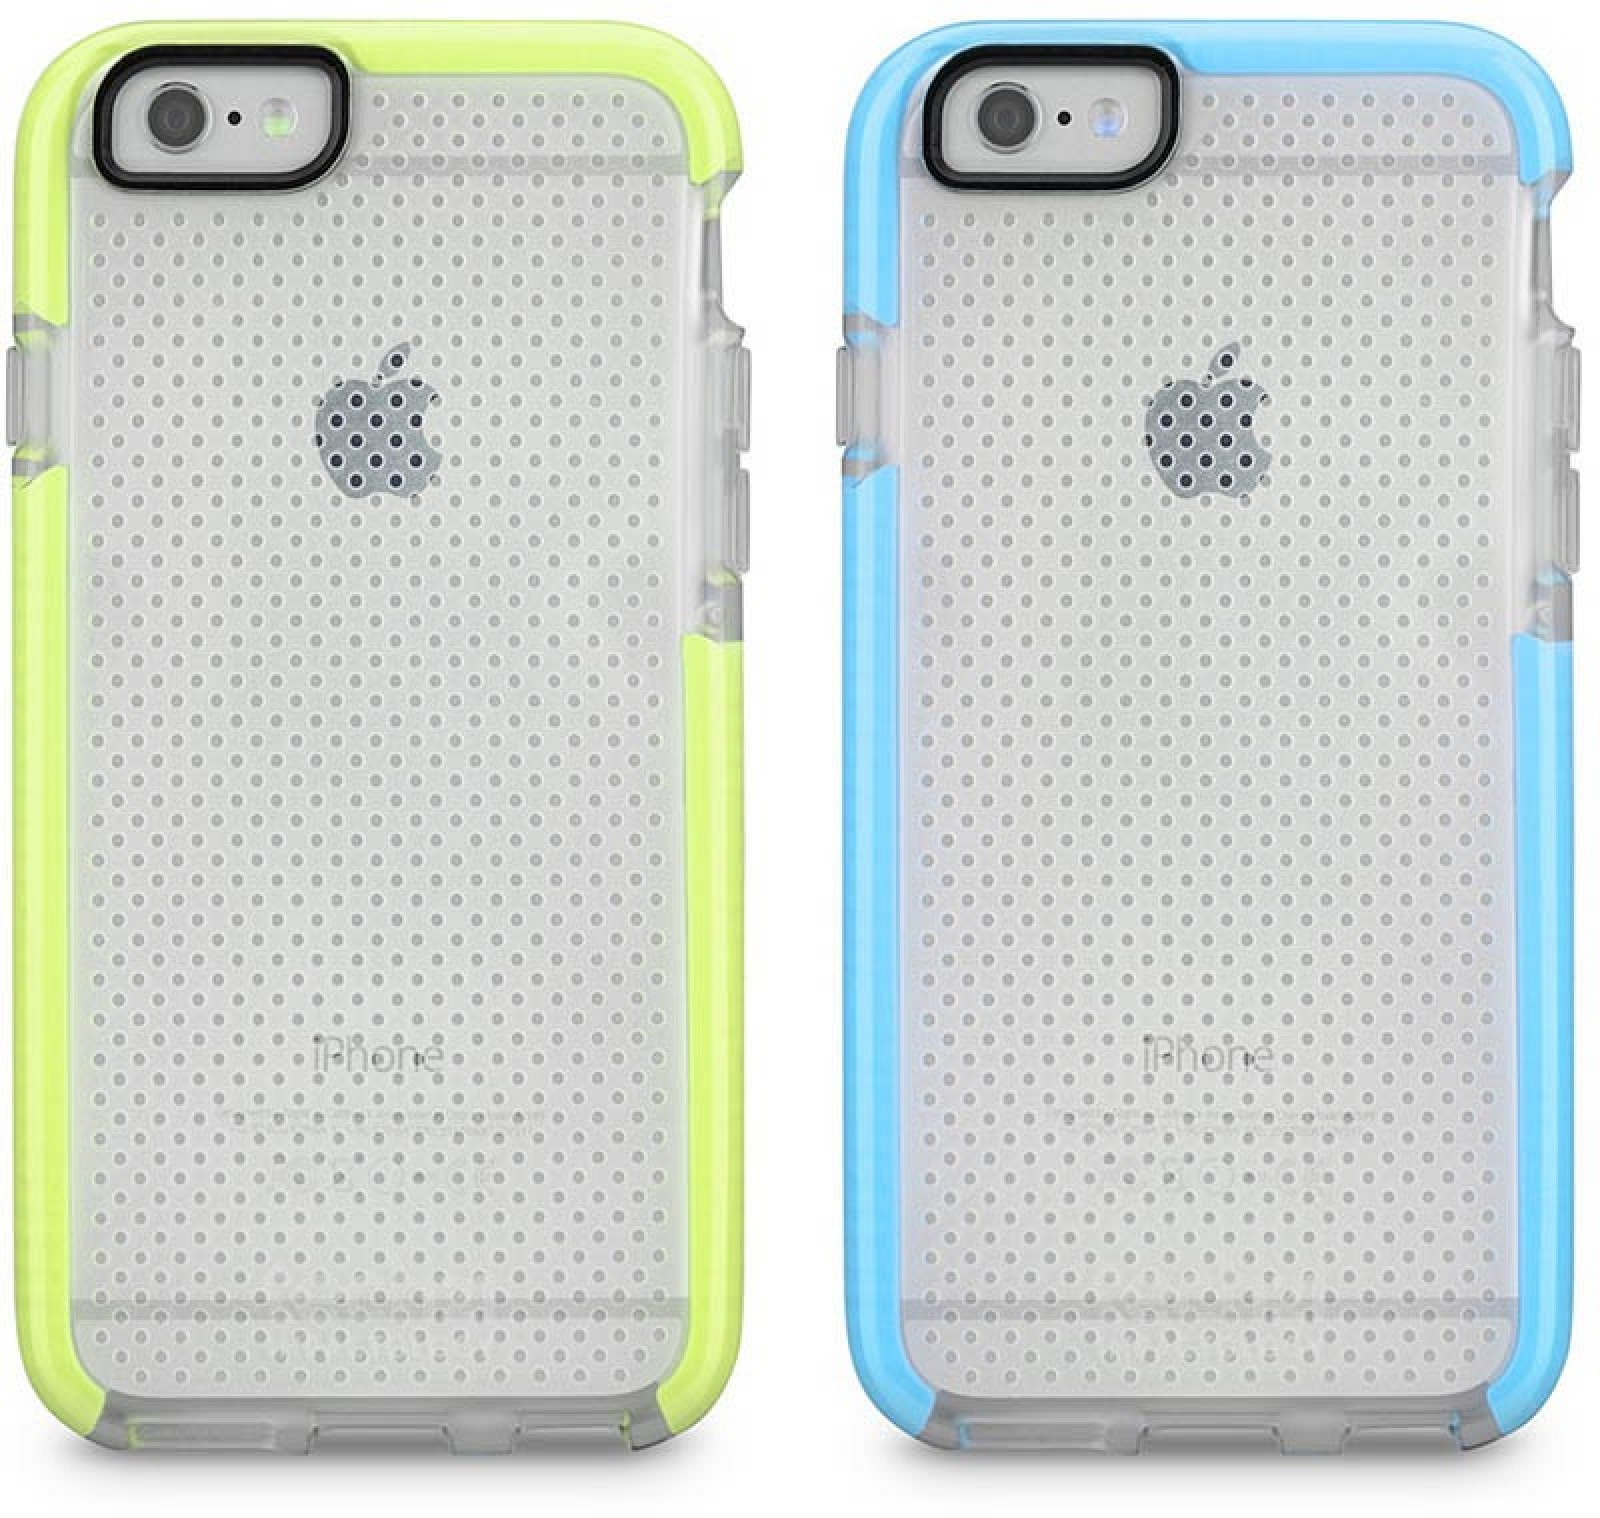 tech21 39 s new apple exclusive iphone cases designed to match apple watch sport bands macrumors. Black Bedroom Furniture Sets. Home Design Ideas